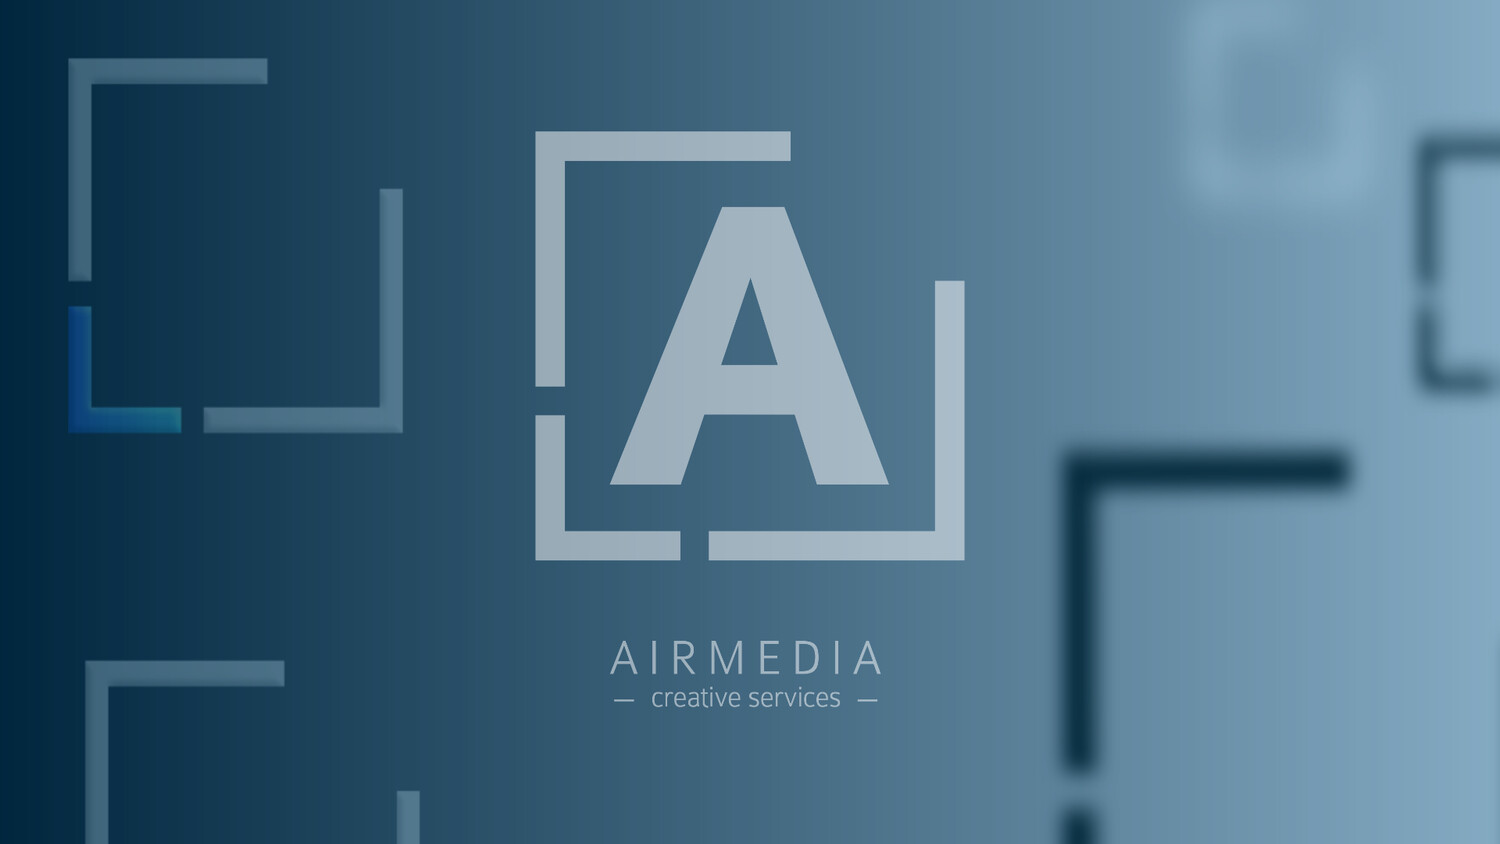 Best Of Effects   Radio Imaging Effects   Air Media